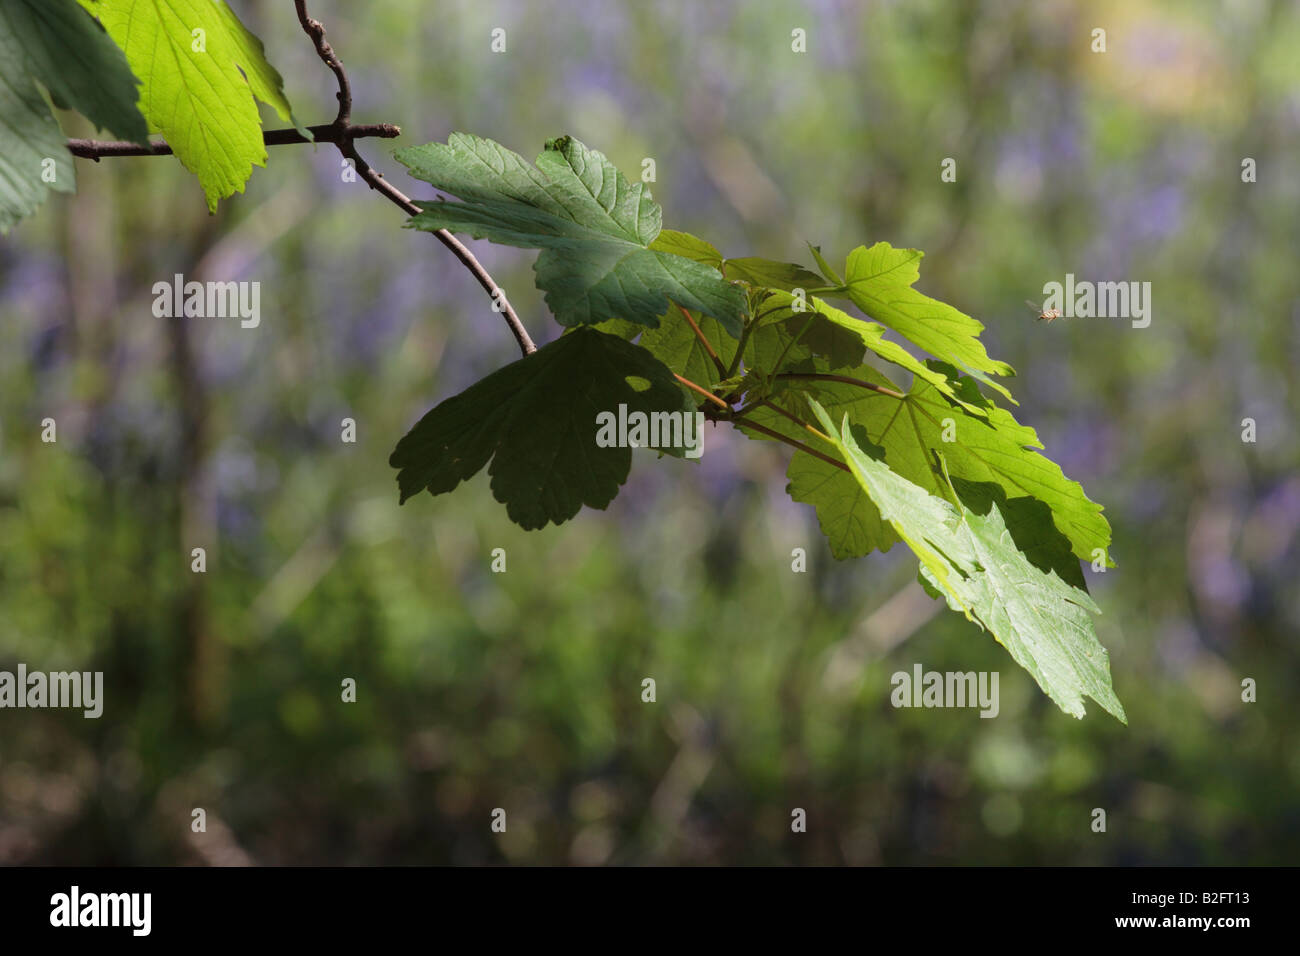 Woodland scene of spotlit Sycamore leaves and hoverfly against a background of Bluebells in Menstrie Wood. - Stock Image